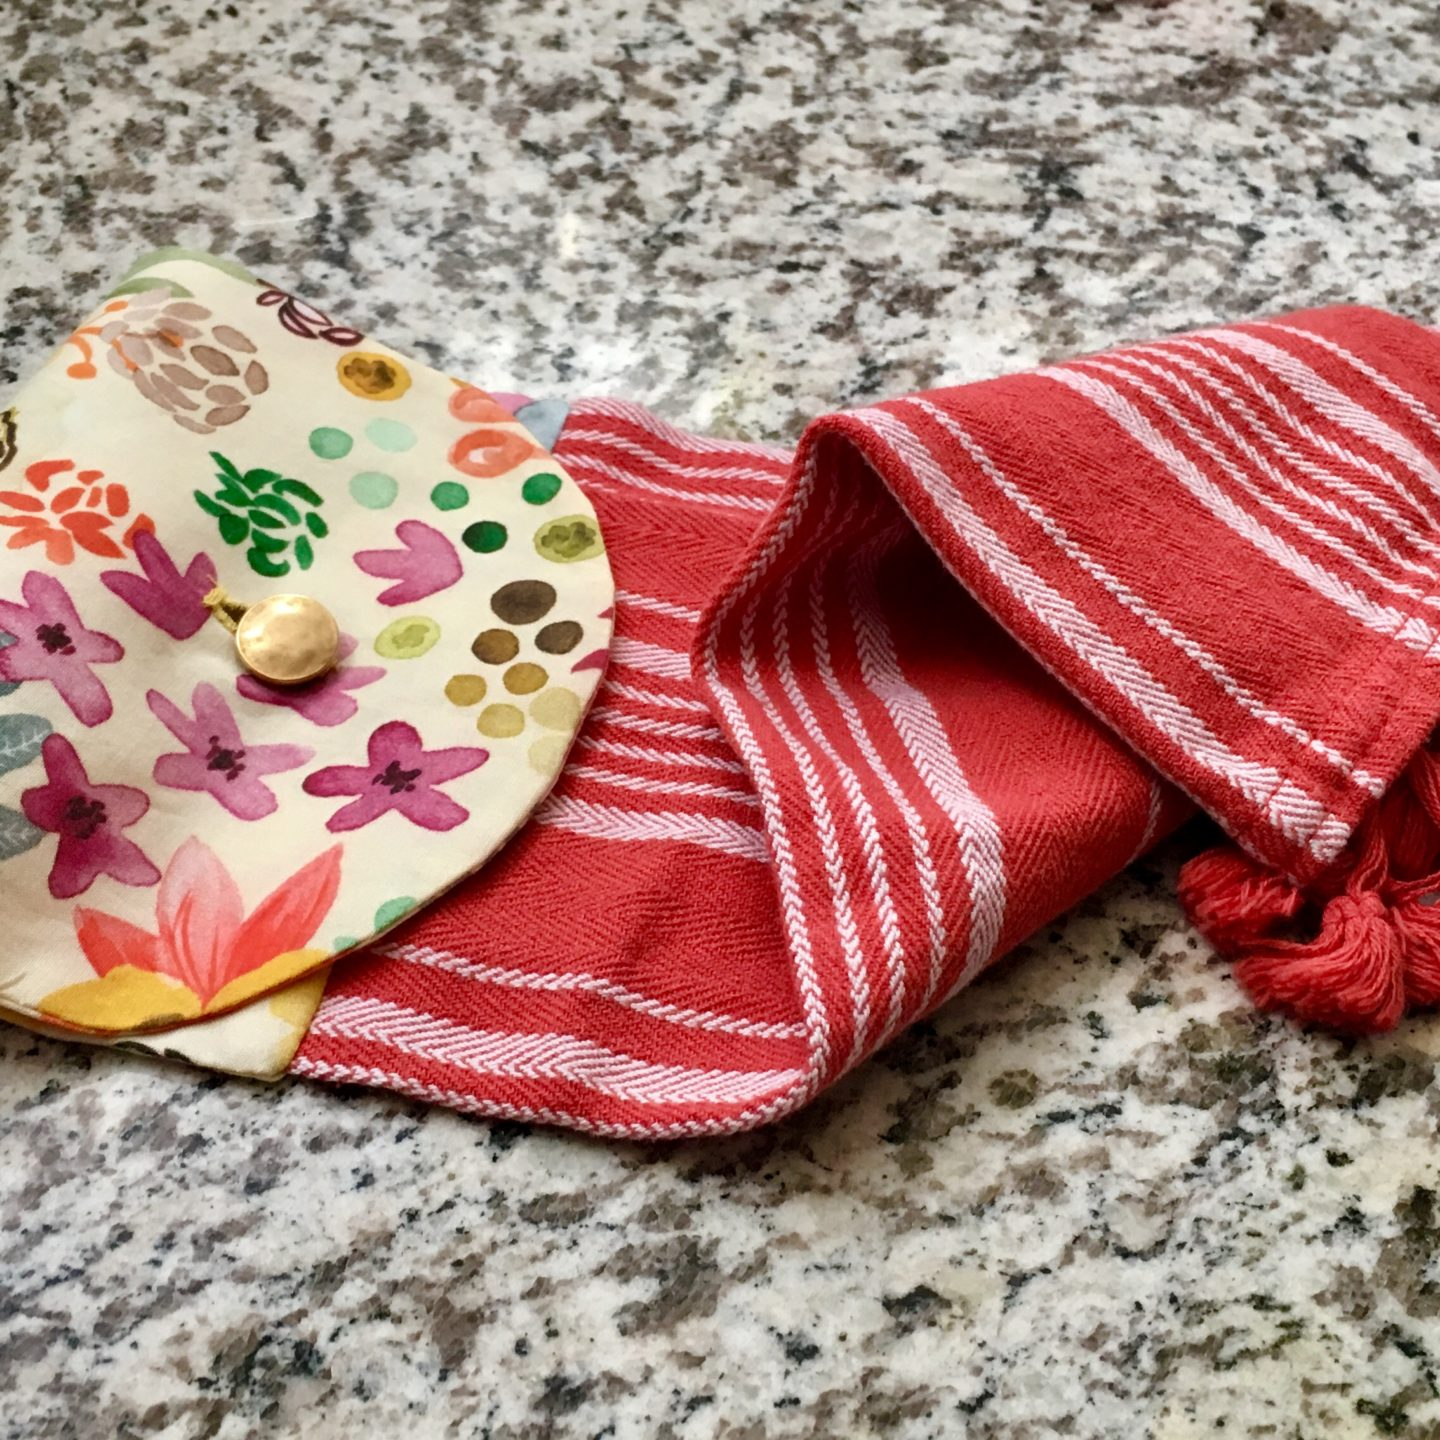 Project: Hanging Hand-Towels